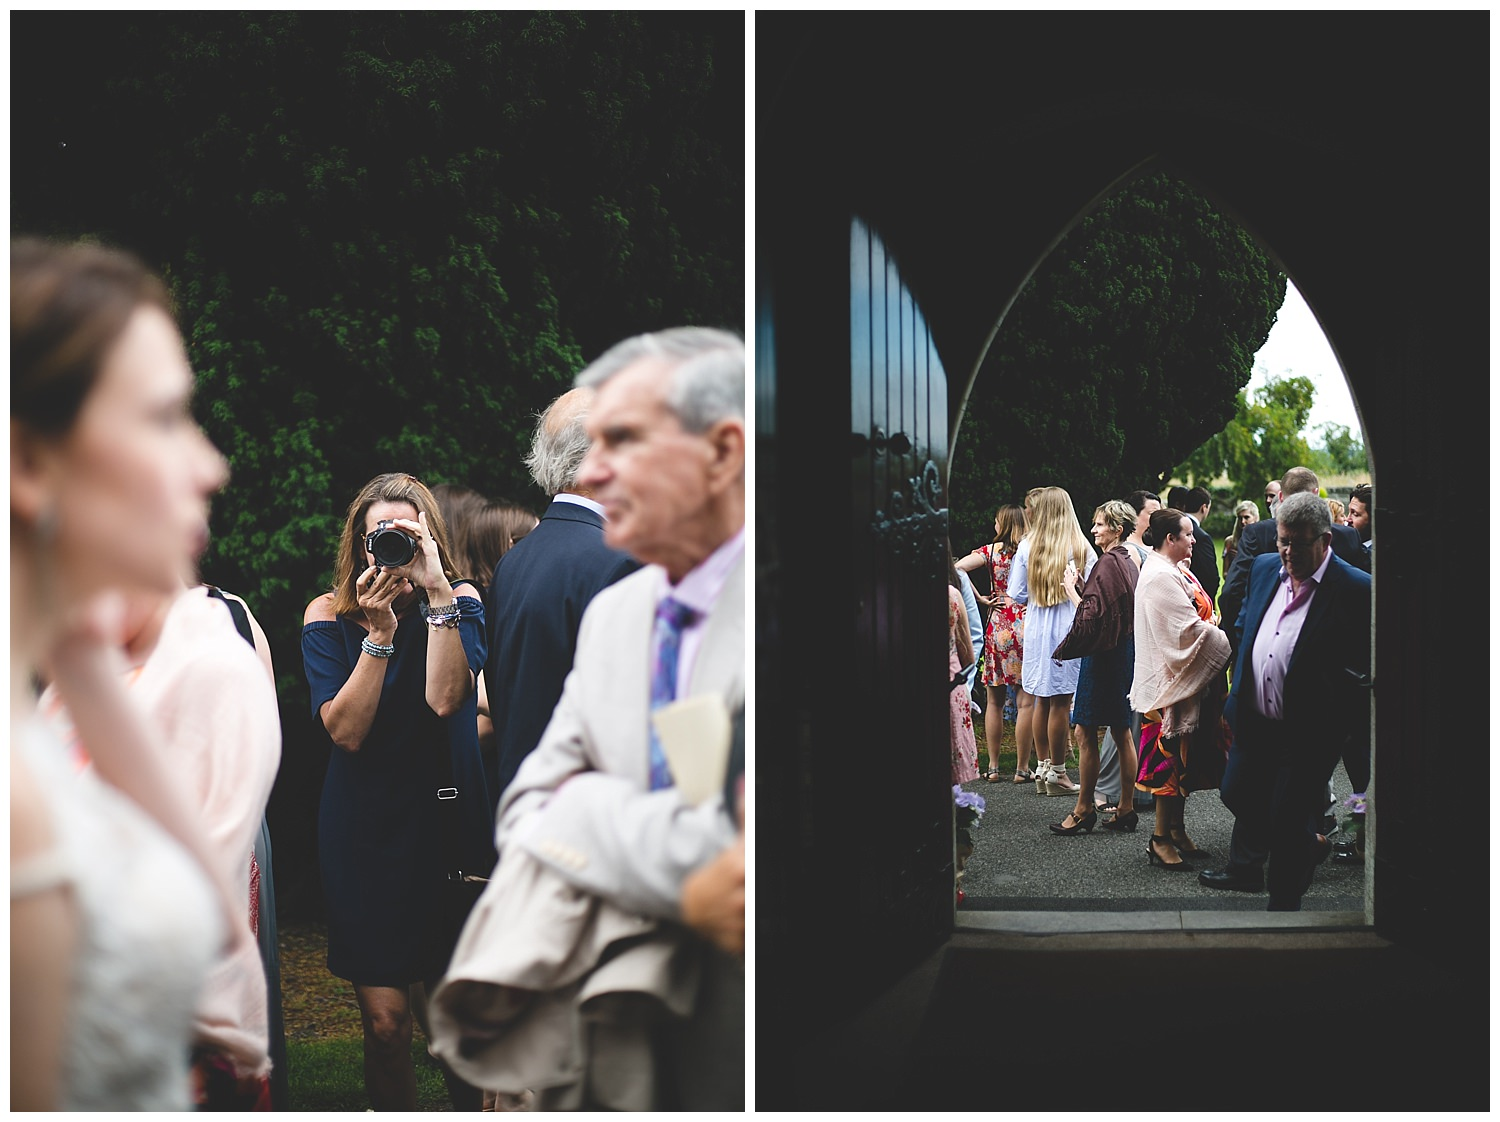 Candid guest portraits at a wedding